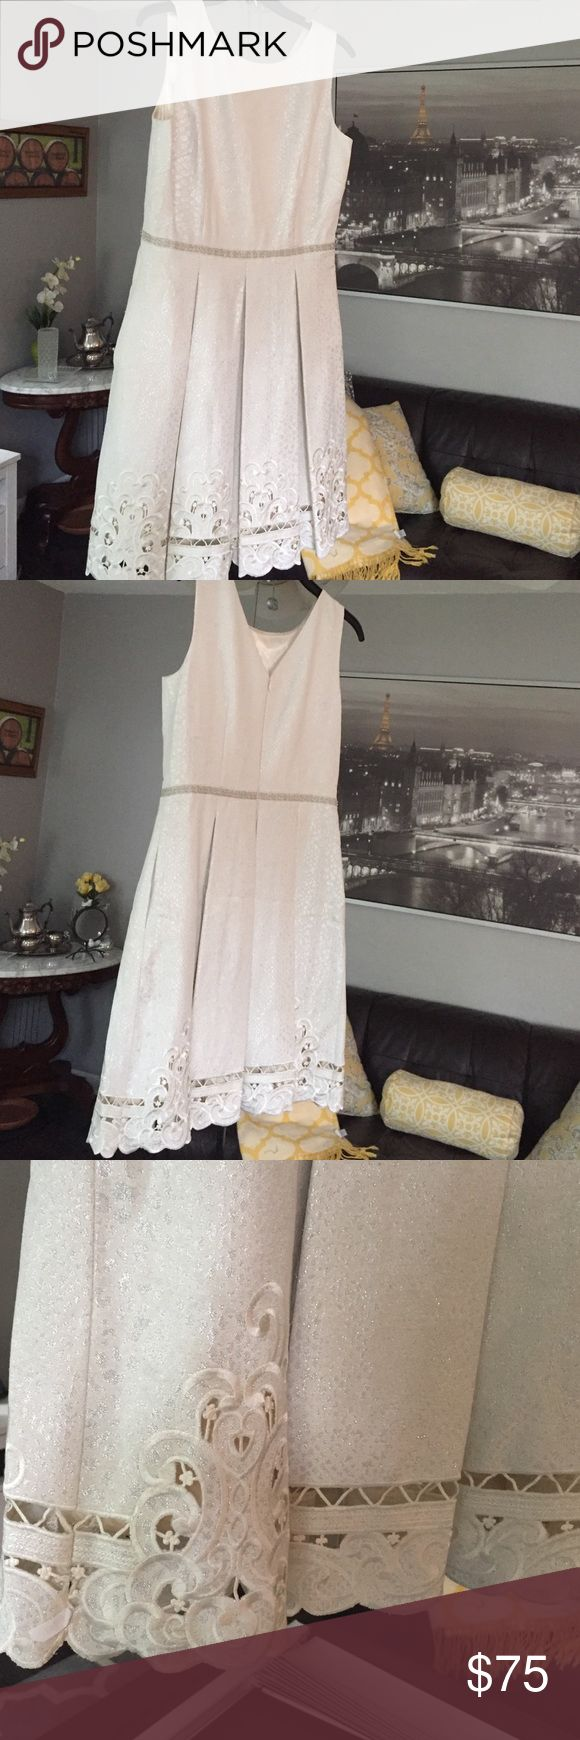 CLOSET CLEAR OUT SALE! cocktail dress Purchases from Dillard's for $200. Only worn once for a bridal shower for literally 3 hours. Size 6. This is a beautiful dress of great quality! Dresses Asymmetrical